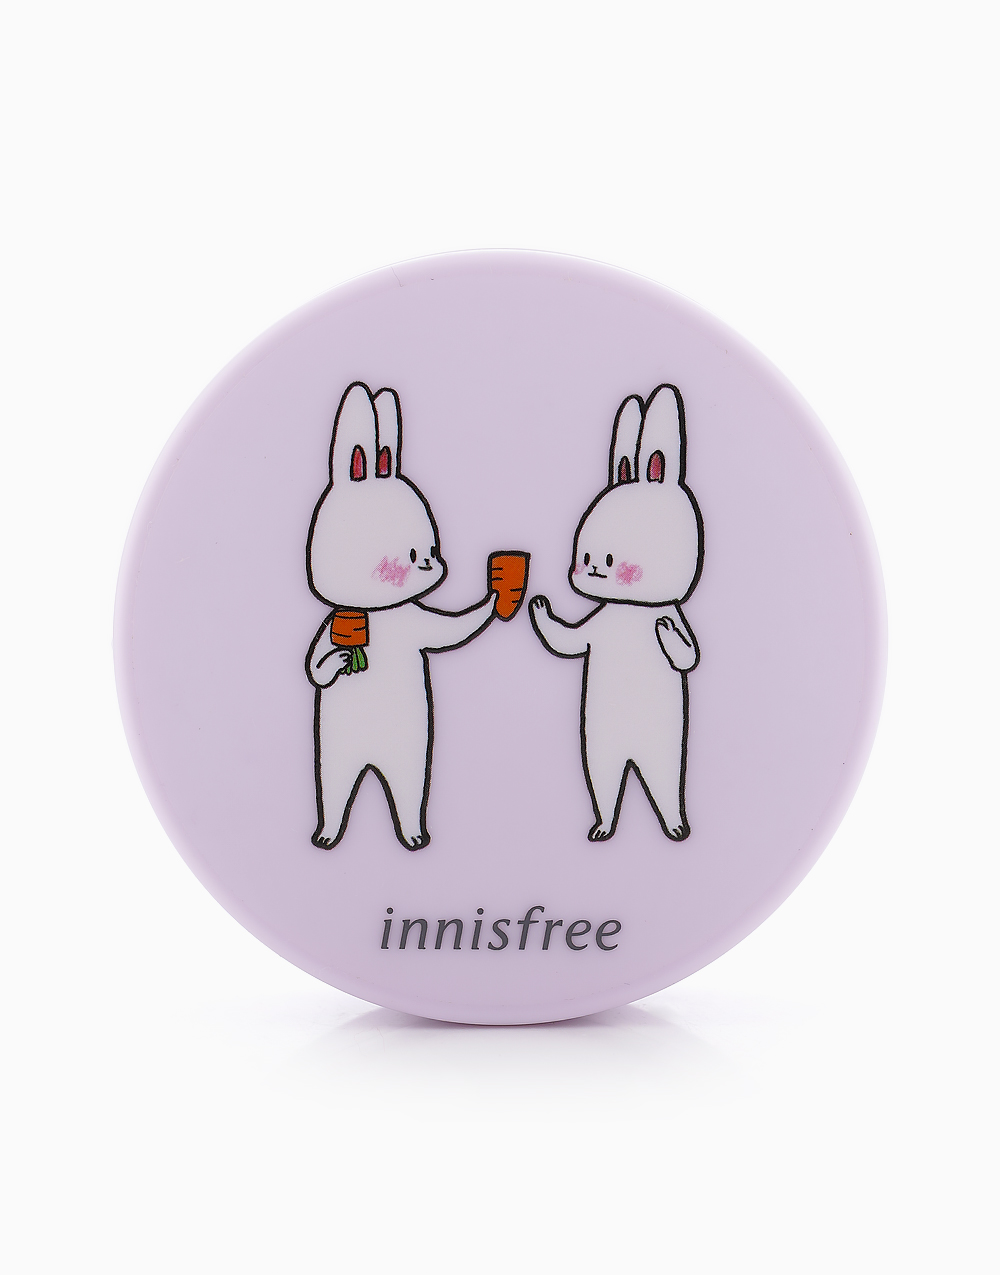 No Sebum Mineral Powder Happy Bunny Edition (5g) by Innisfree | #5 Best Friends Forever